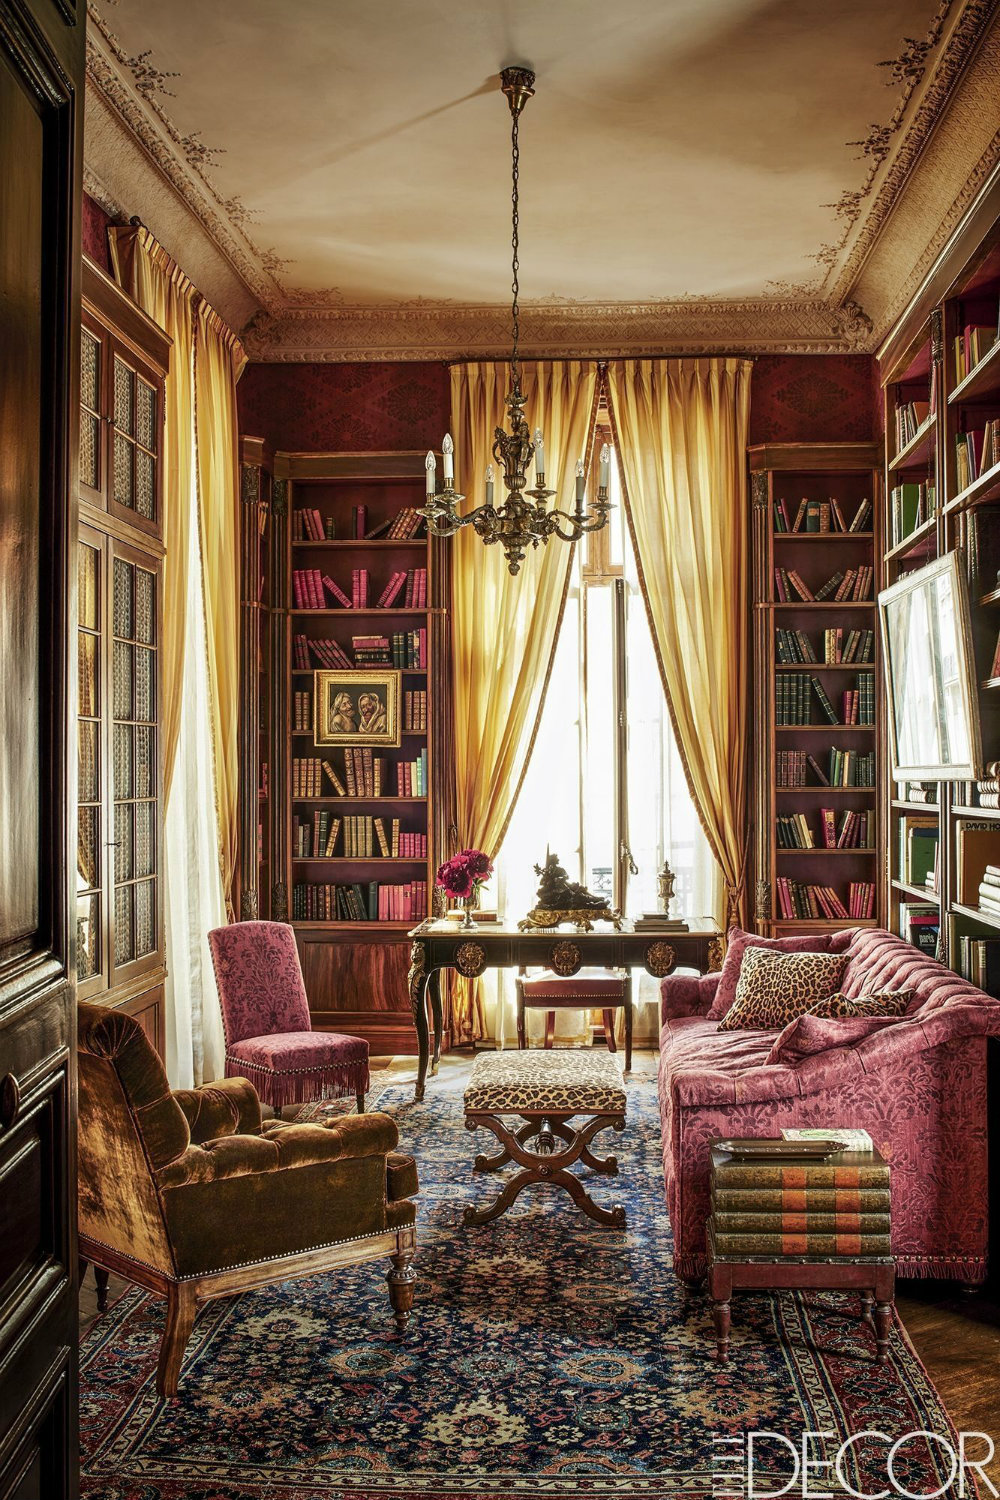 7 of the Most Chic Interiors in Paris 02 chic interiors in paris 7 of the Most Chic Interiors in Paris 7 of the Most Chic Interiors in Paris 02